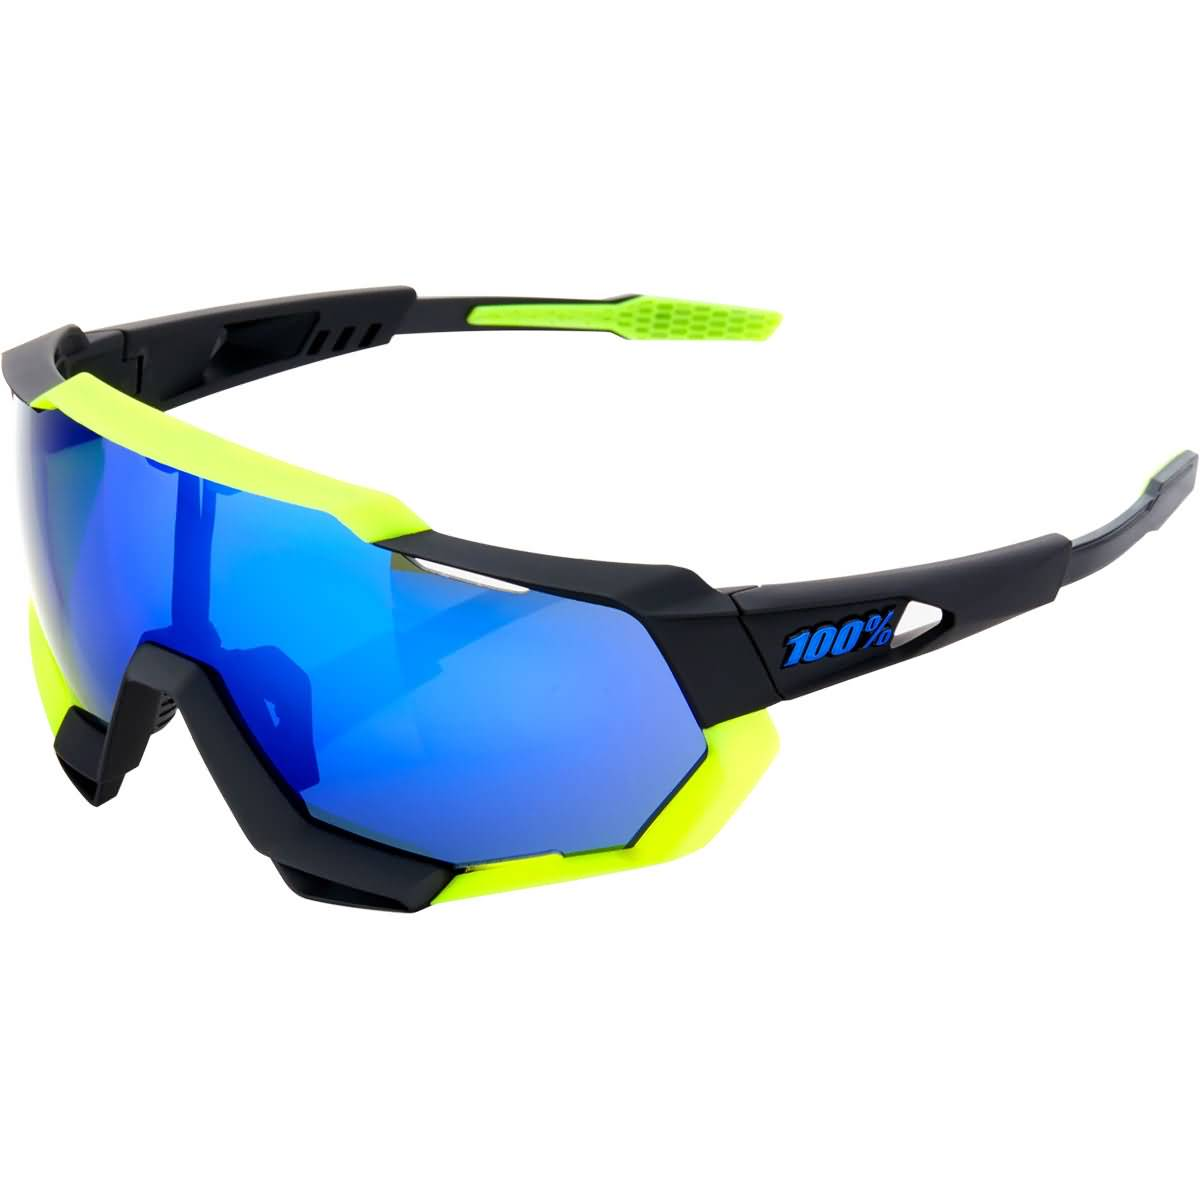 100% Speedtrap Men's Sports Sunglasses-955721